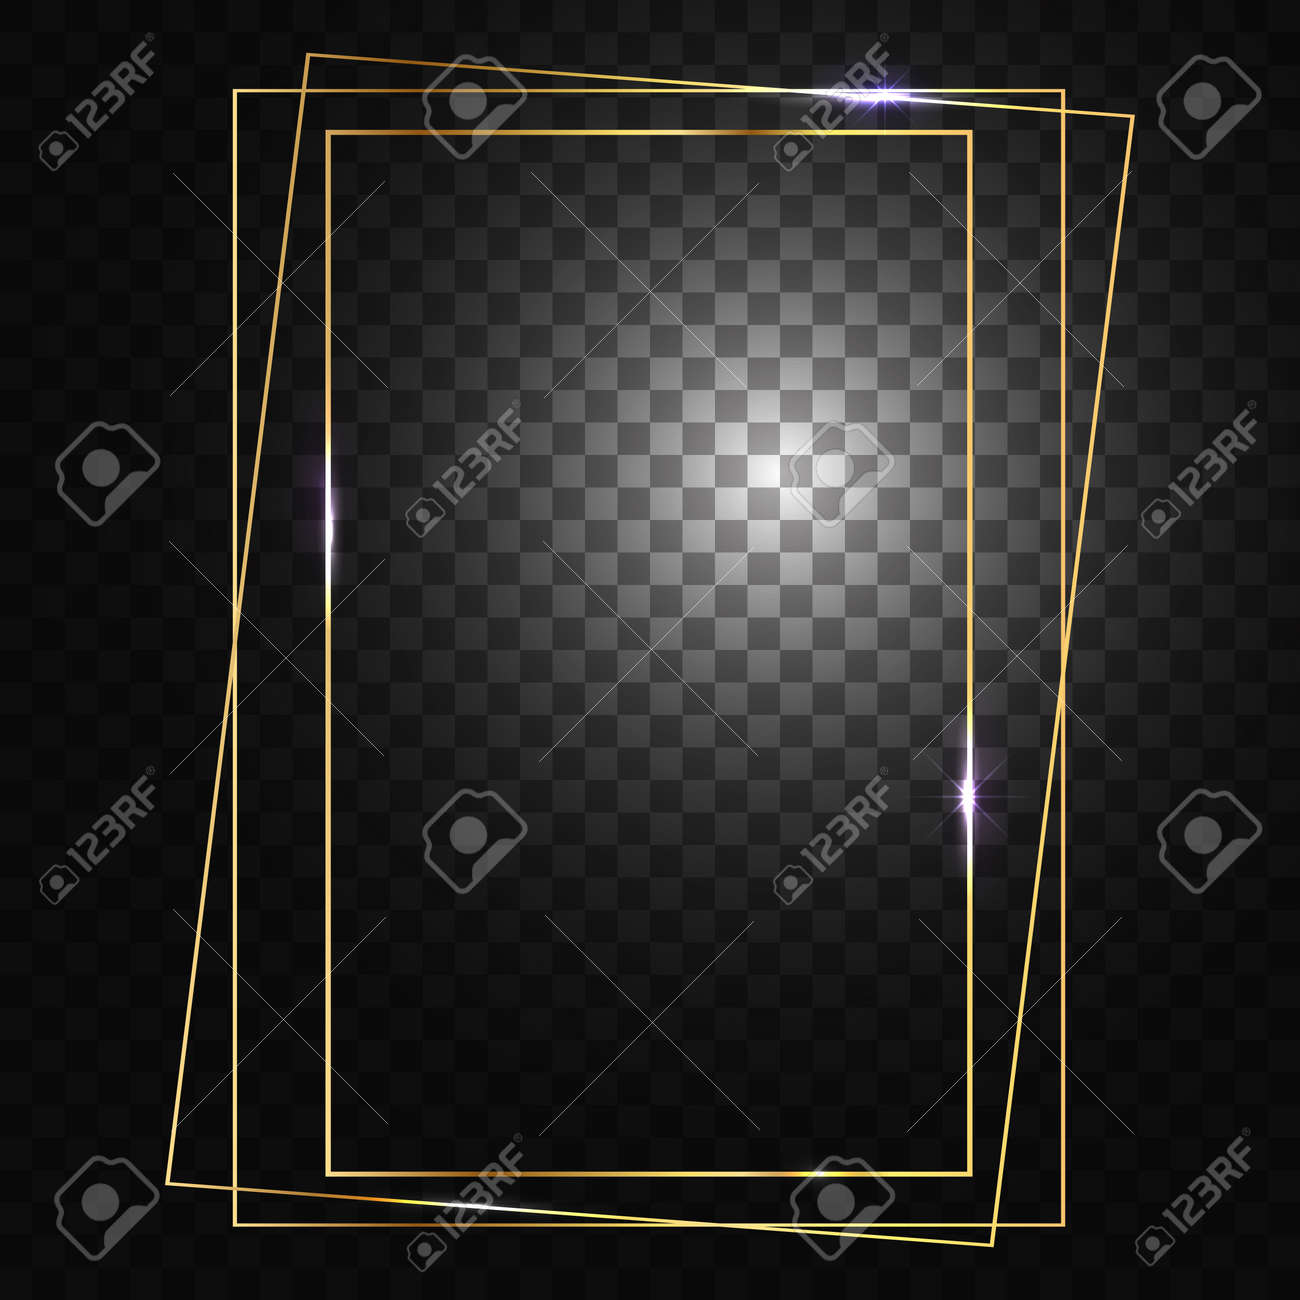 Gold frame. Square frame for designs and photos. Glowing sparkles and stars on the frames. Isolated, transparent background. - 162529865